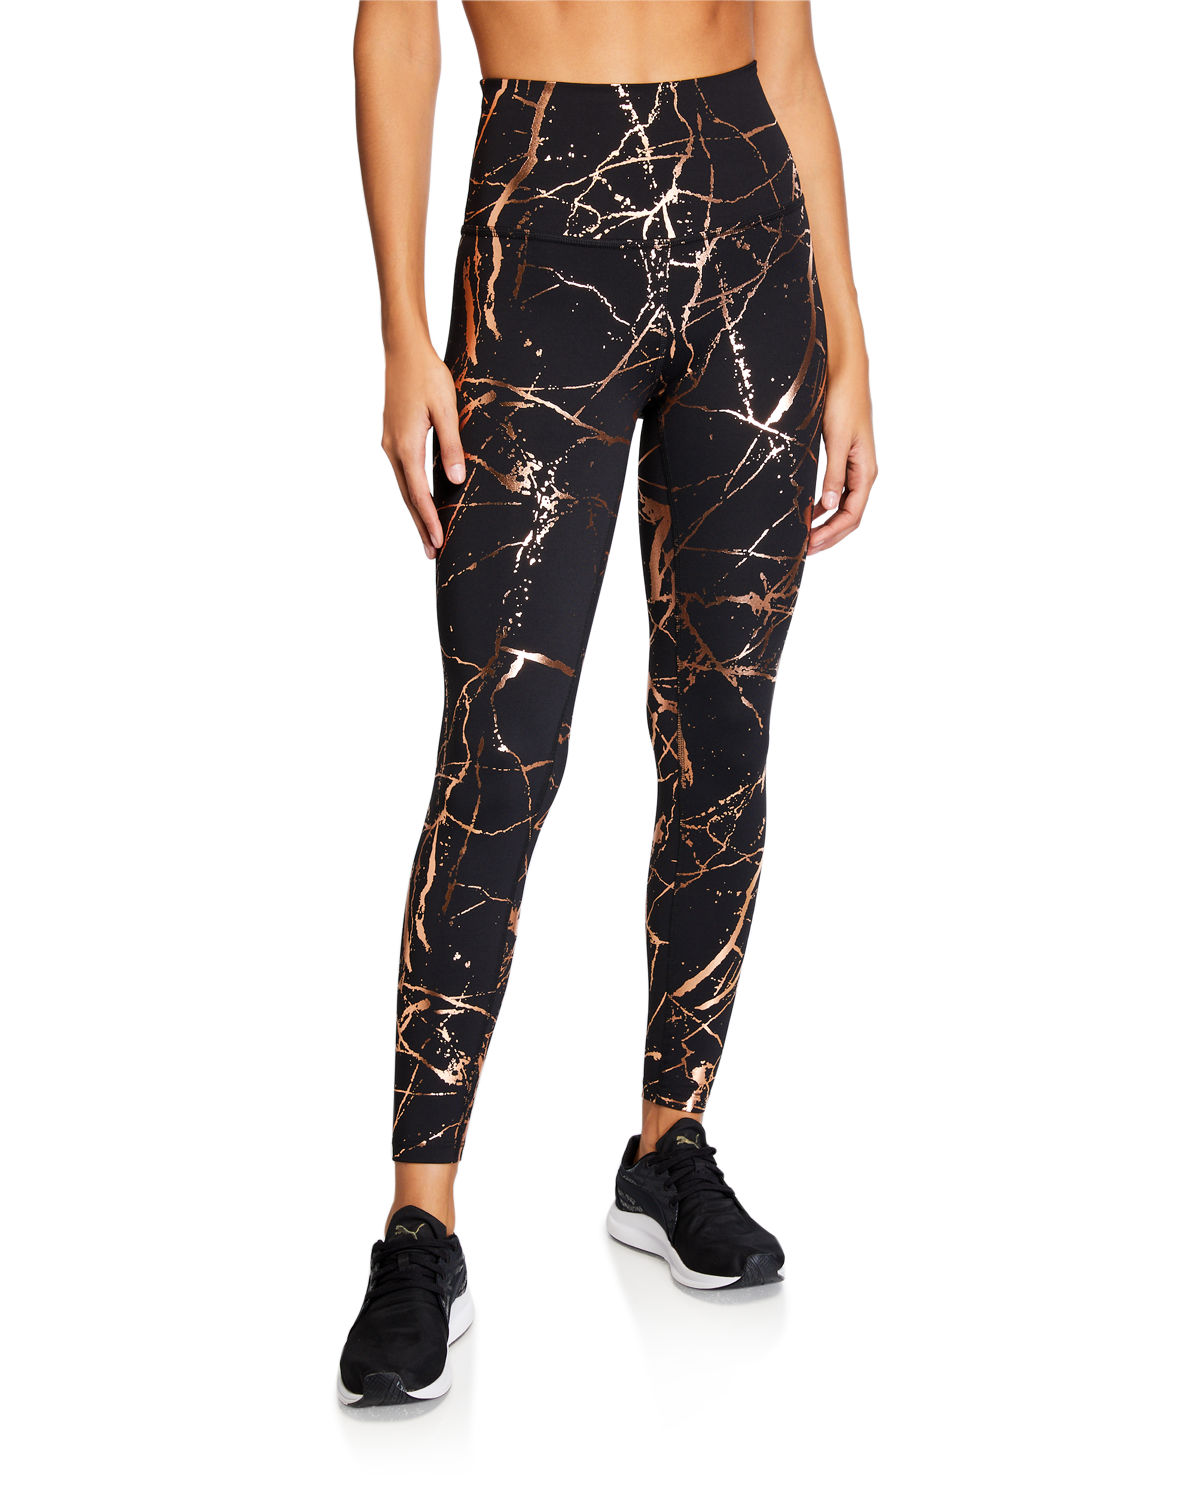 Beyond Yoga Pants LOST YOUR MARBLES HIGH-WAIST MIDI LEGGINGS